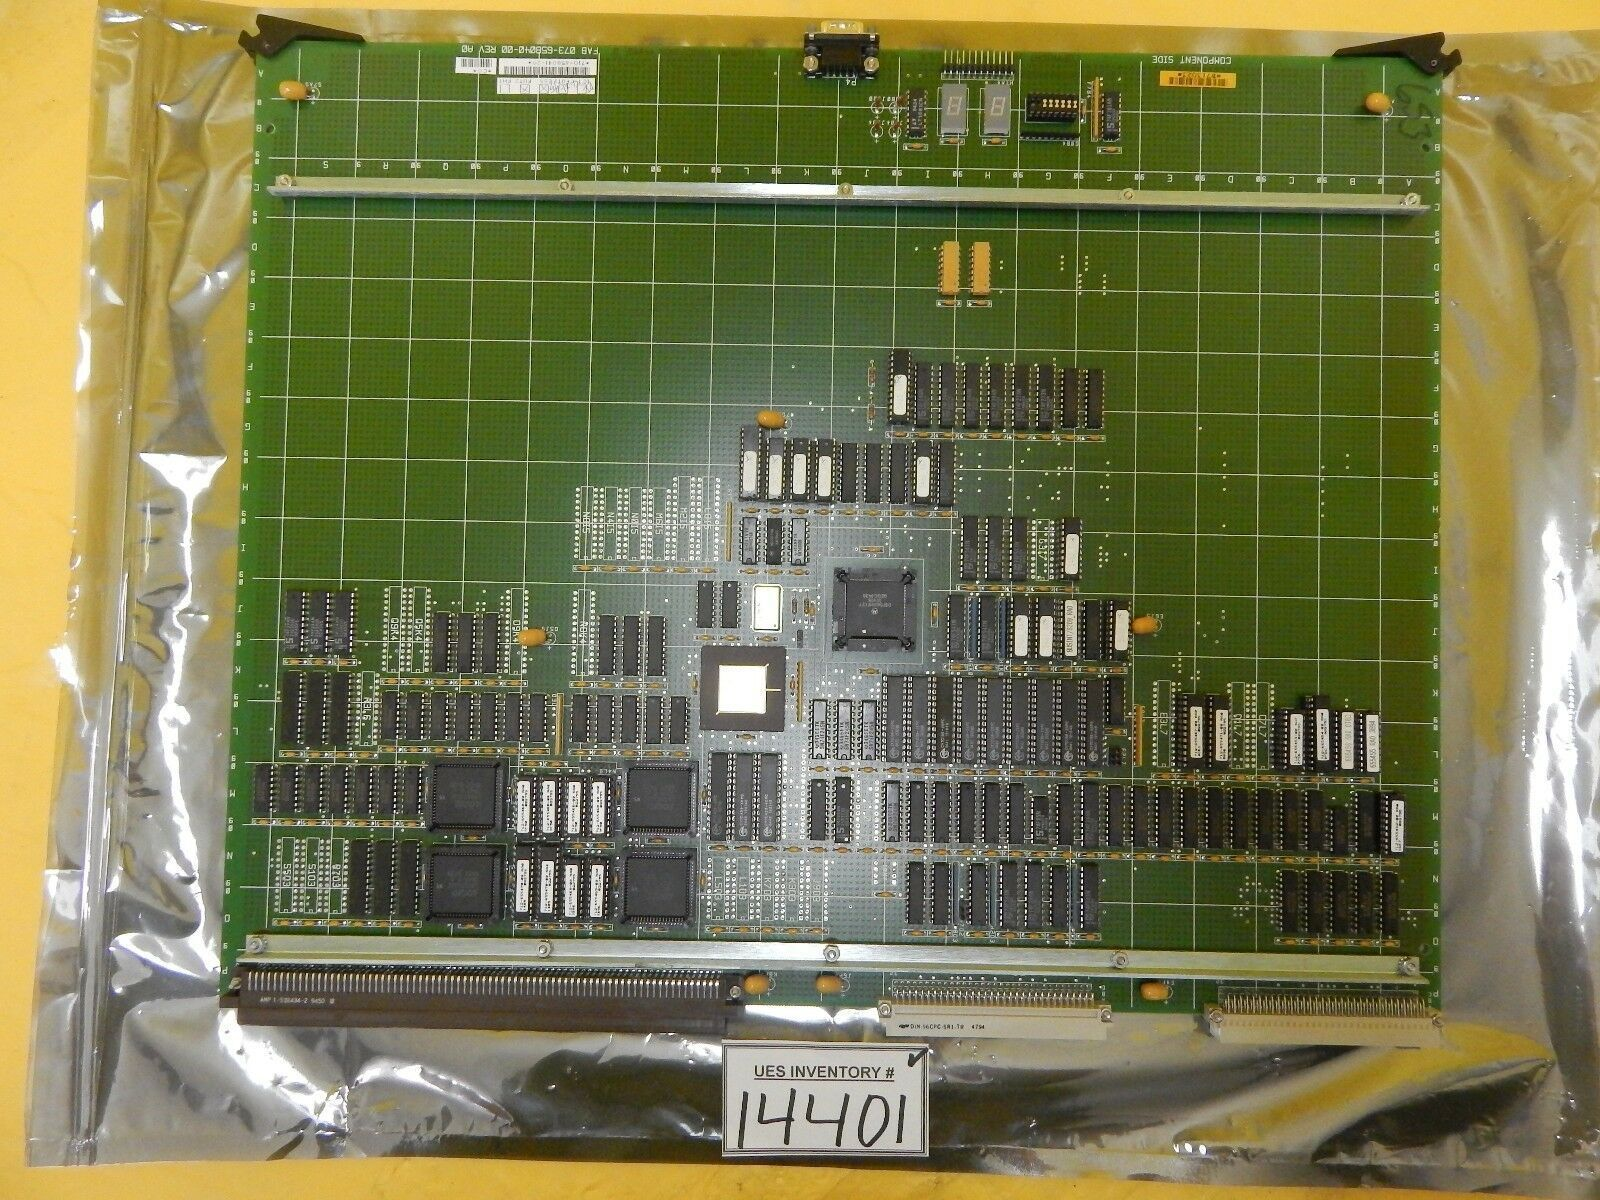 KLA Instruments 710-658041-20 Rev. C0 Alignment Processor Phase 3 PCB 2132 Used